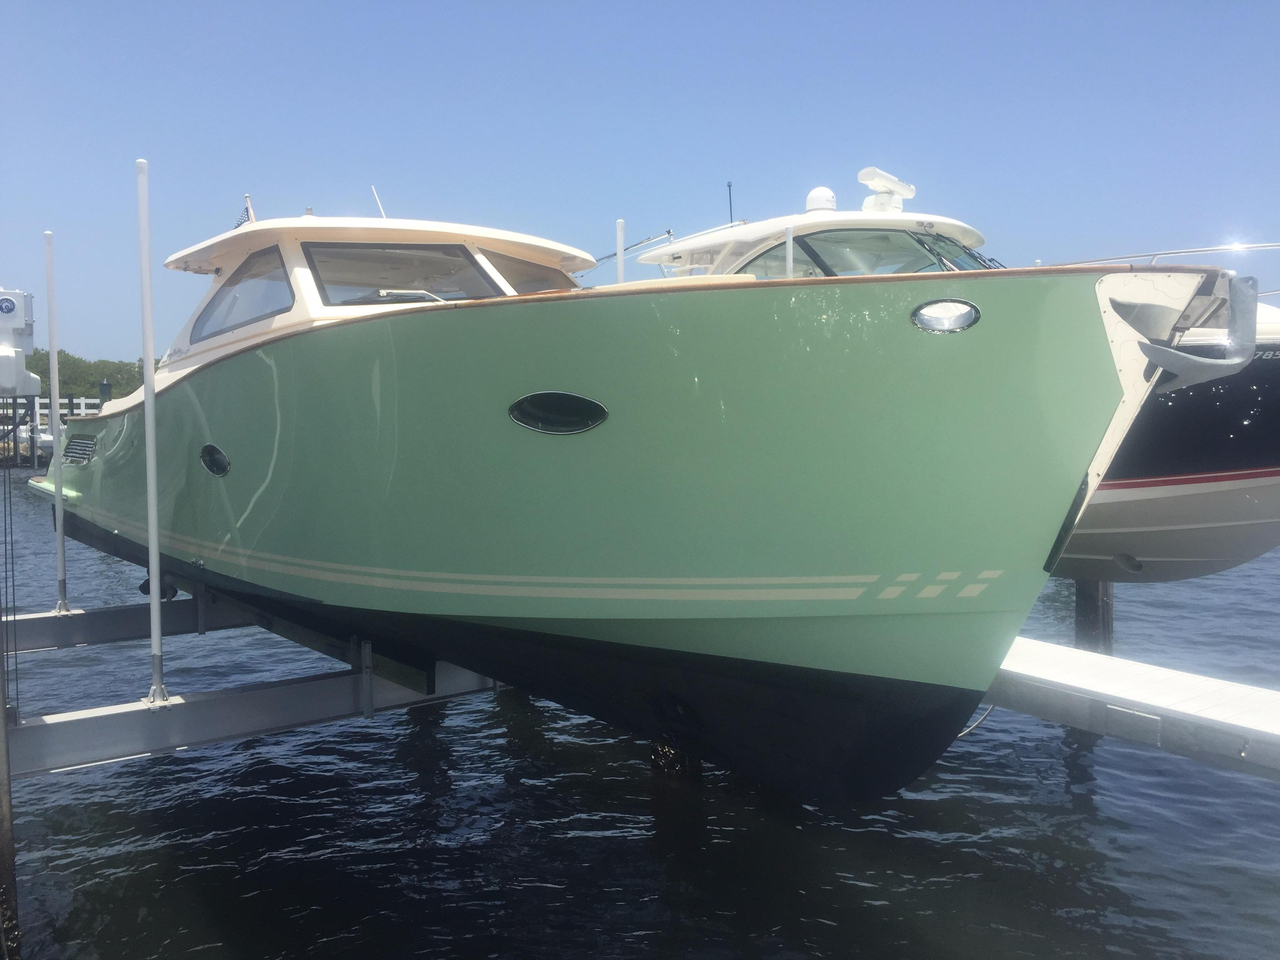 2011 Used Gagliotta 35 Italian Picnic Lobster Fishing Boat For Sale - $244,900 - Palm Beach, FL ...